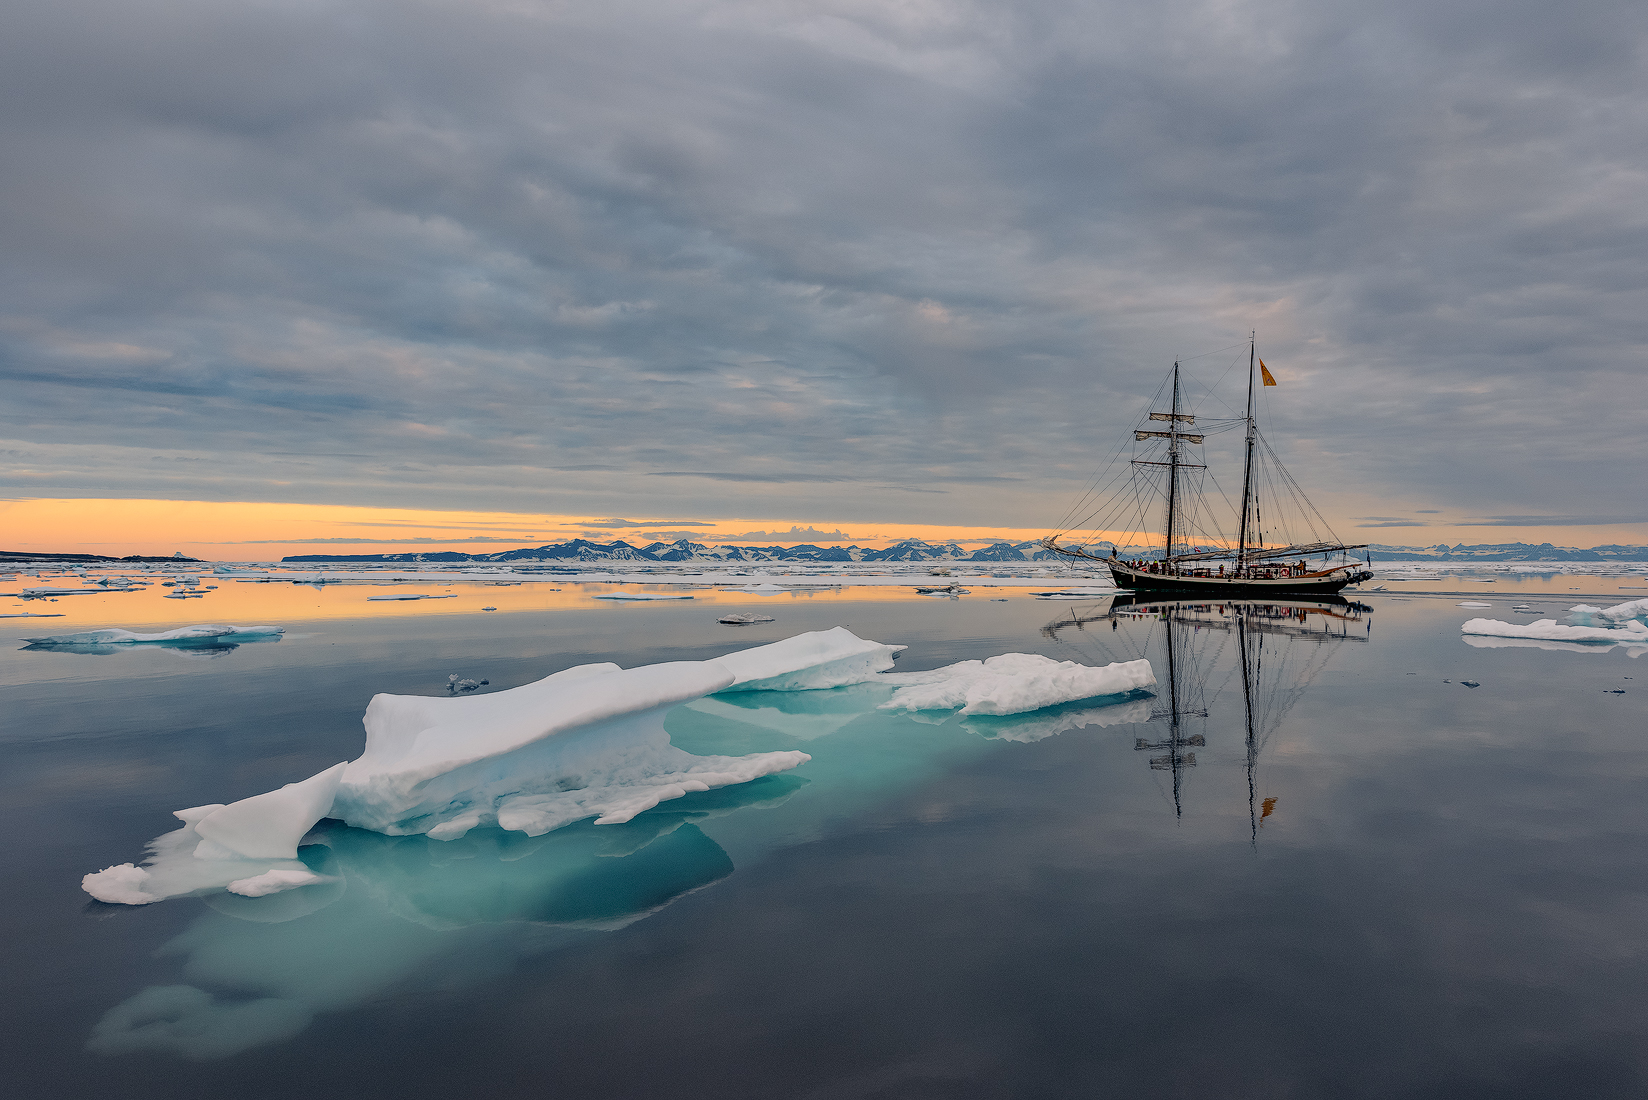 Epic 10 Day Greenland Sailing Trip & Photography Workshop with Transfer from Reykjavik - day 2